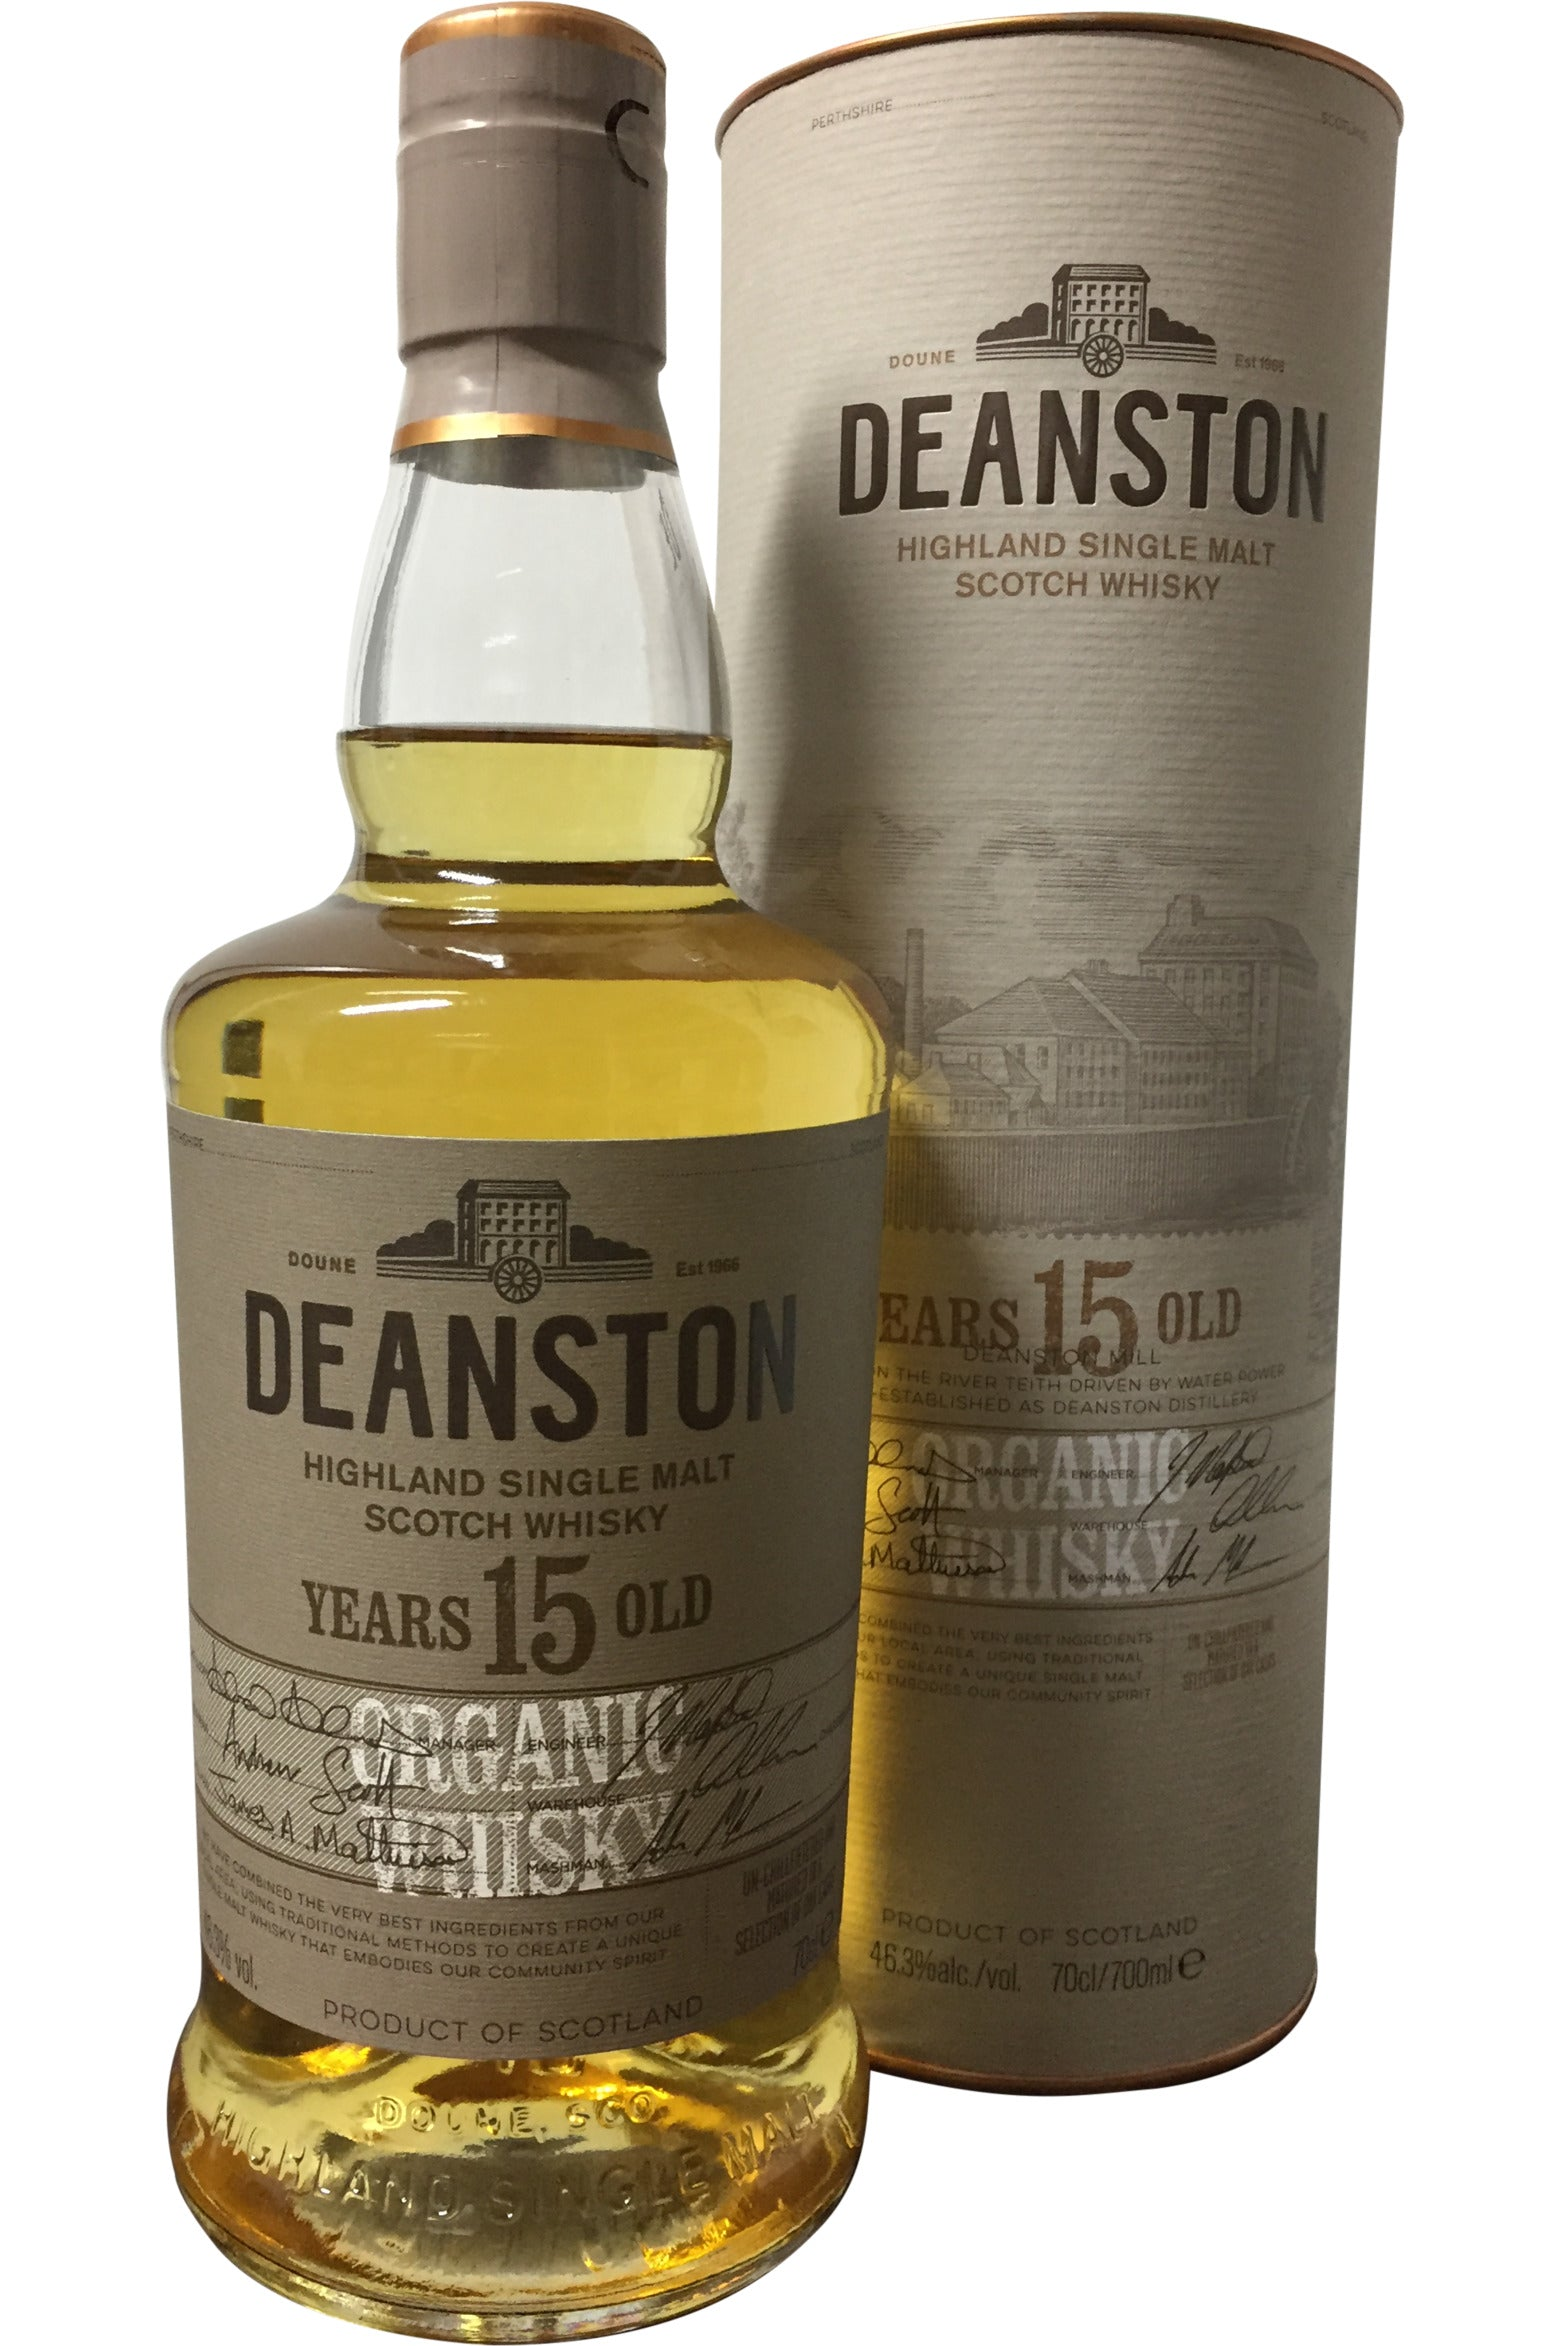 Deanston 15 Year Old Organic | 46.3% 700ml